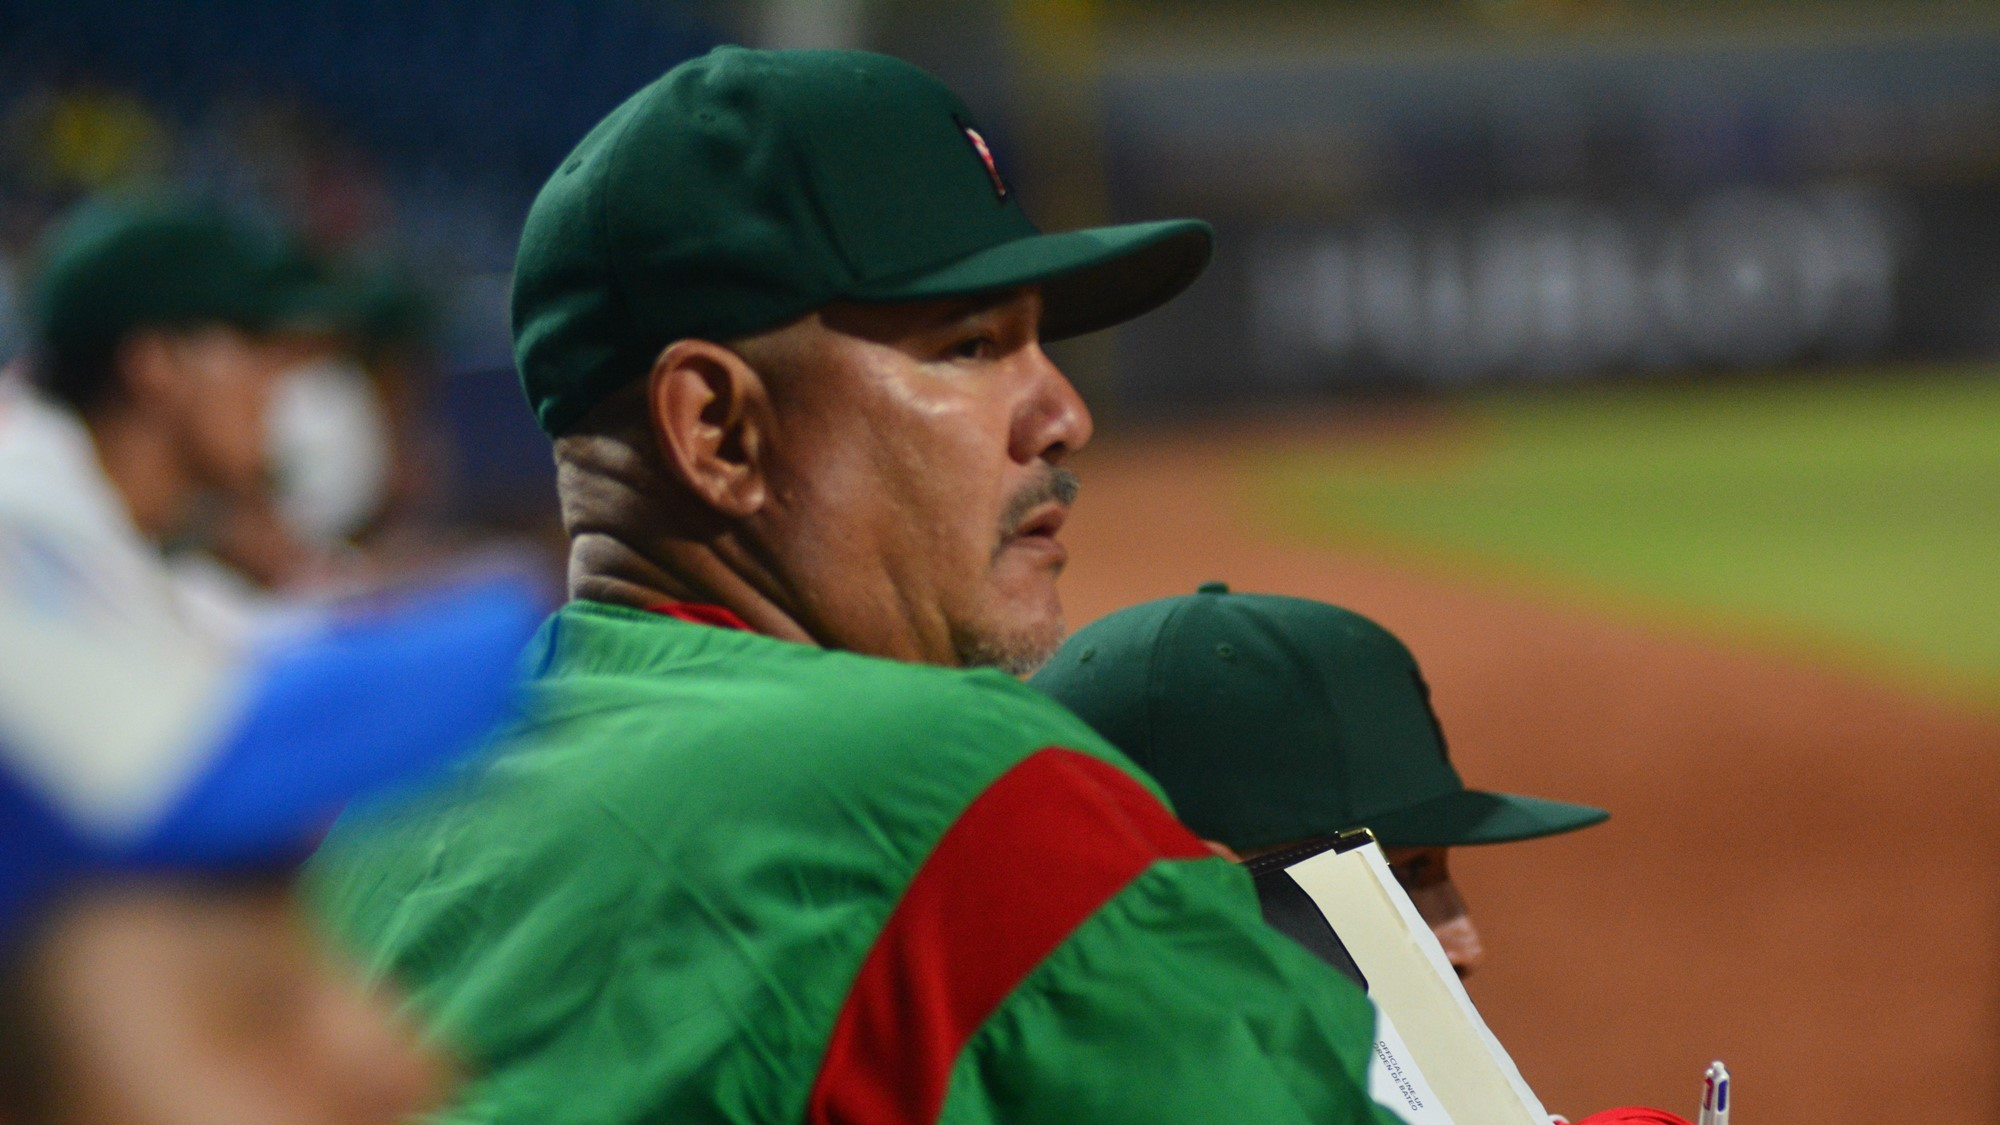 Josè 'Che' Reyes is the manager of Mexico